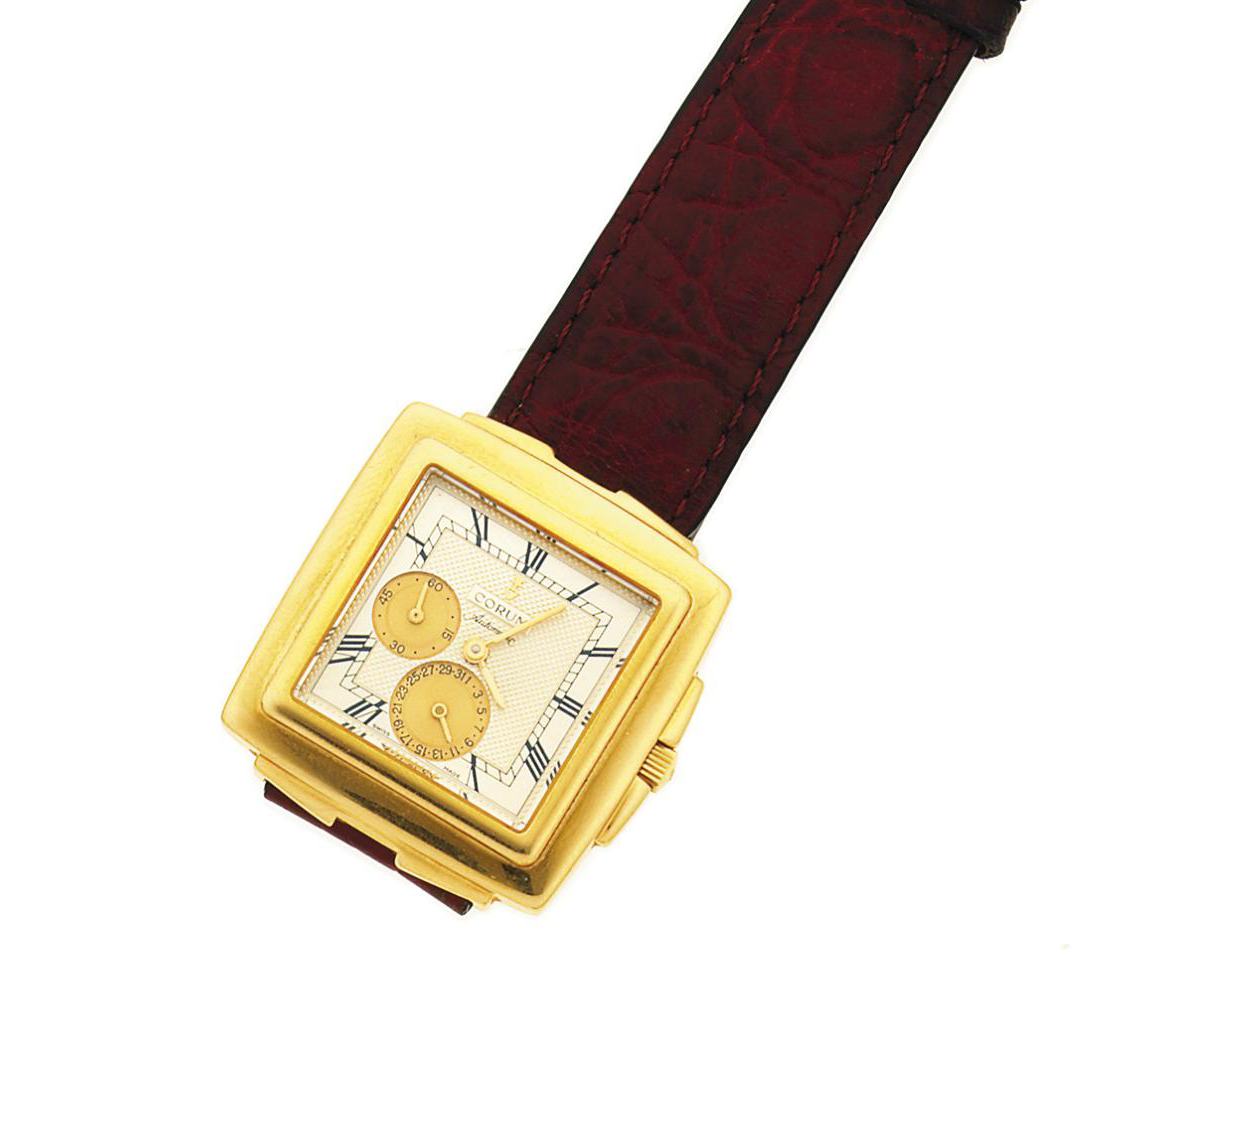 An 18ct gold automatic wristwatch, by Corum